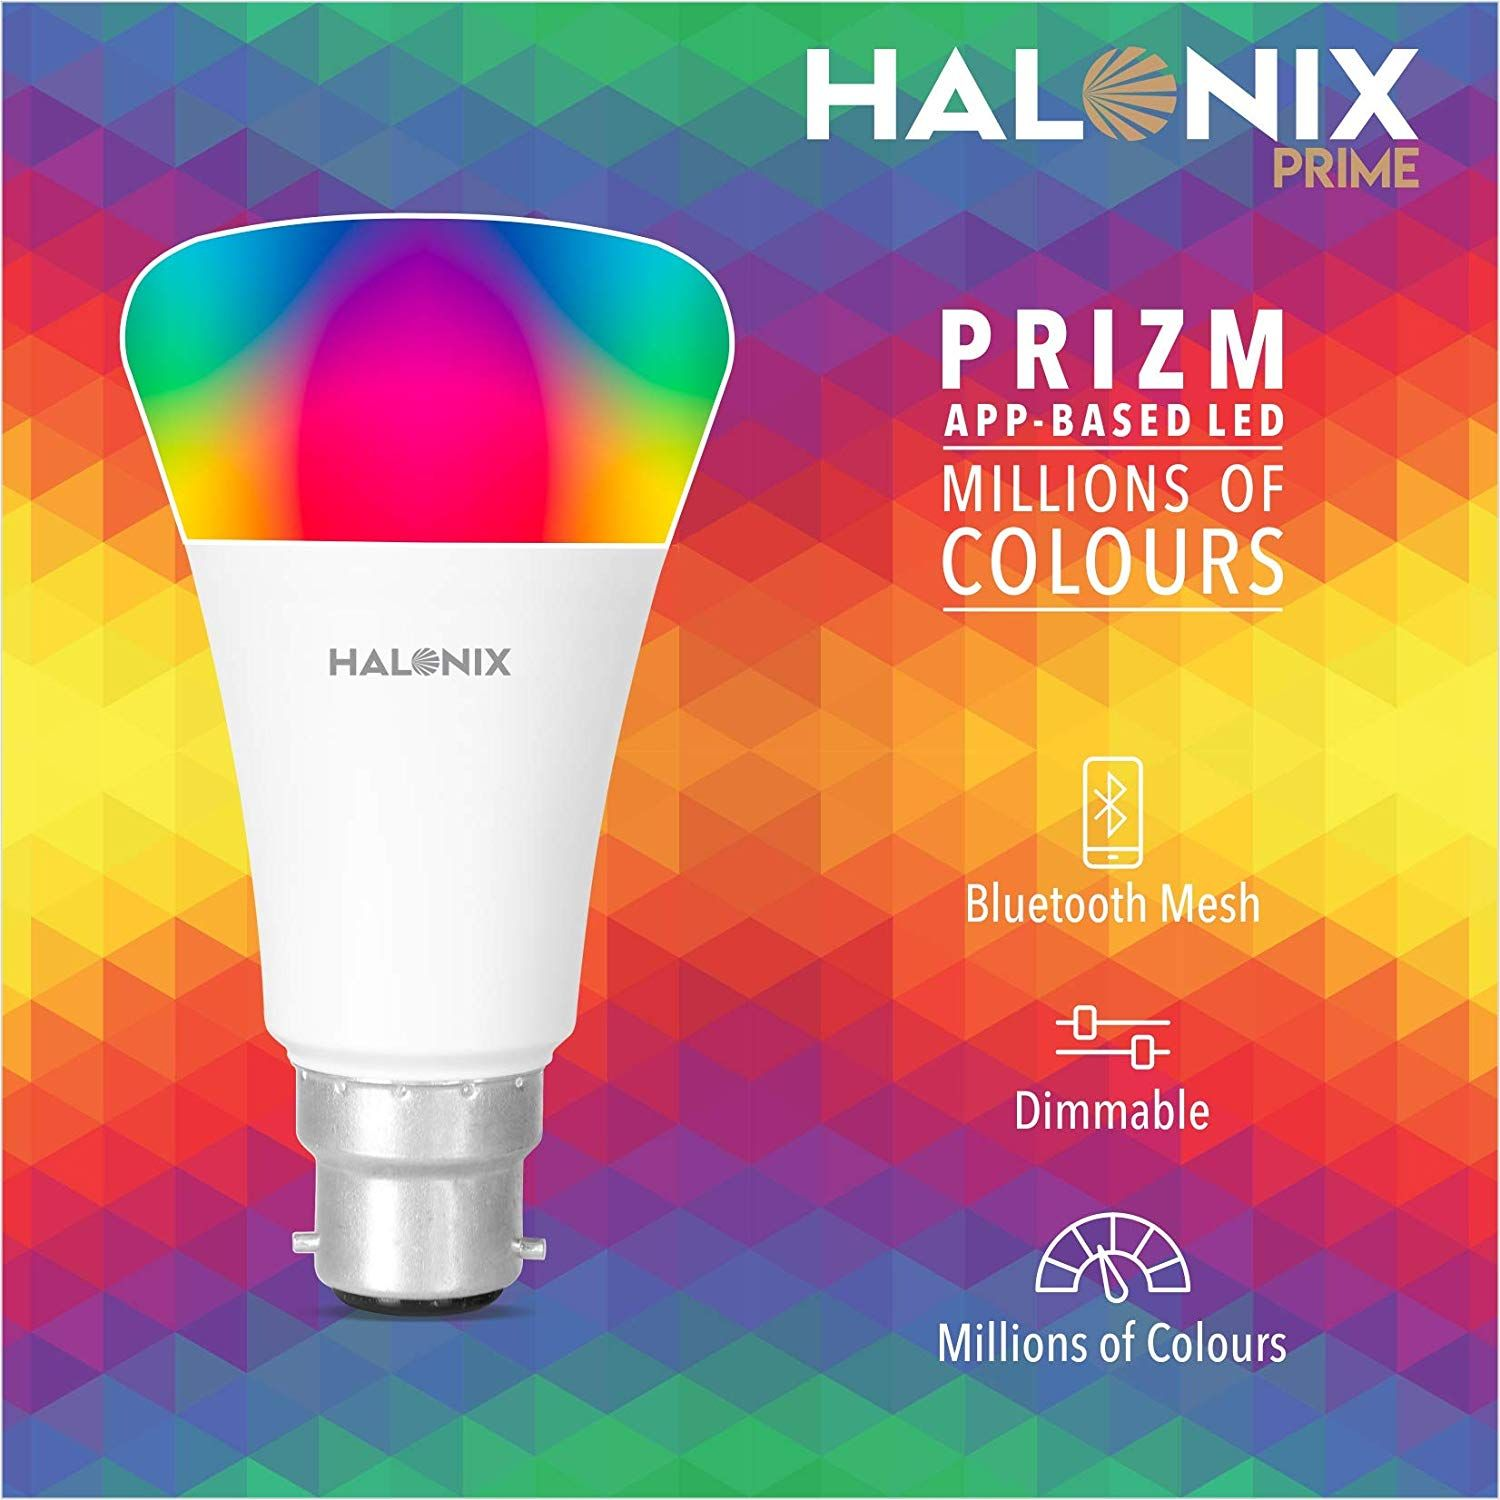 Control Lights From Smartphone With Halonix Bt Free App For Android Smartphones Iphone And Ipad You Can Control Lights In Your Home Its Ver In 2020 Led Bulb Bulb Led